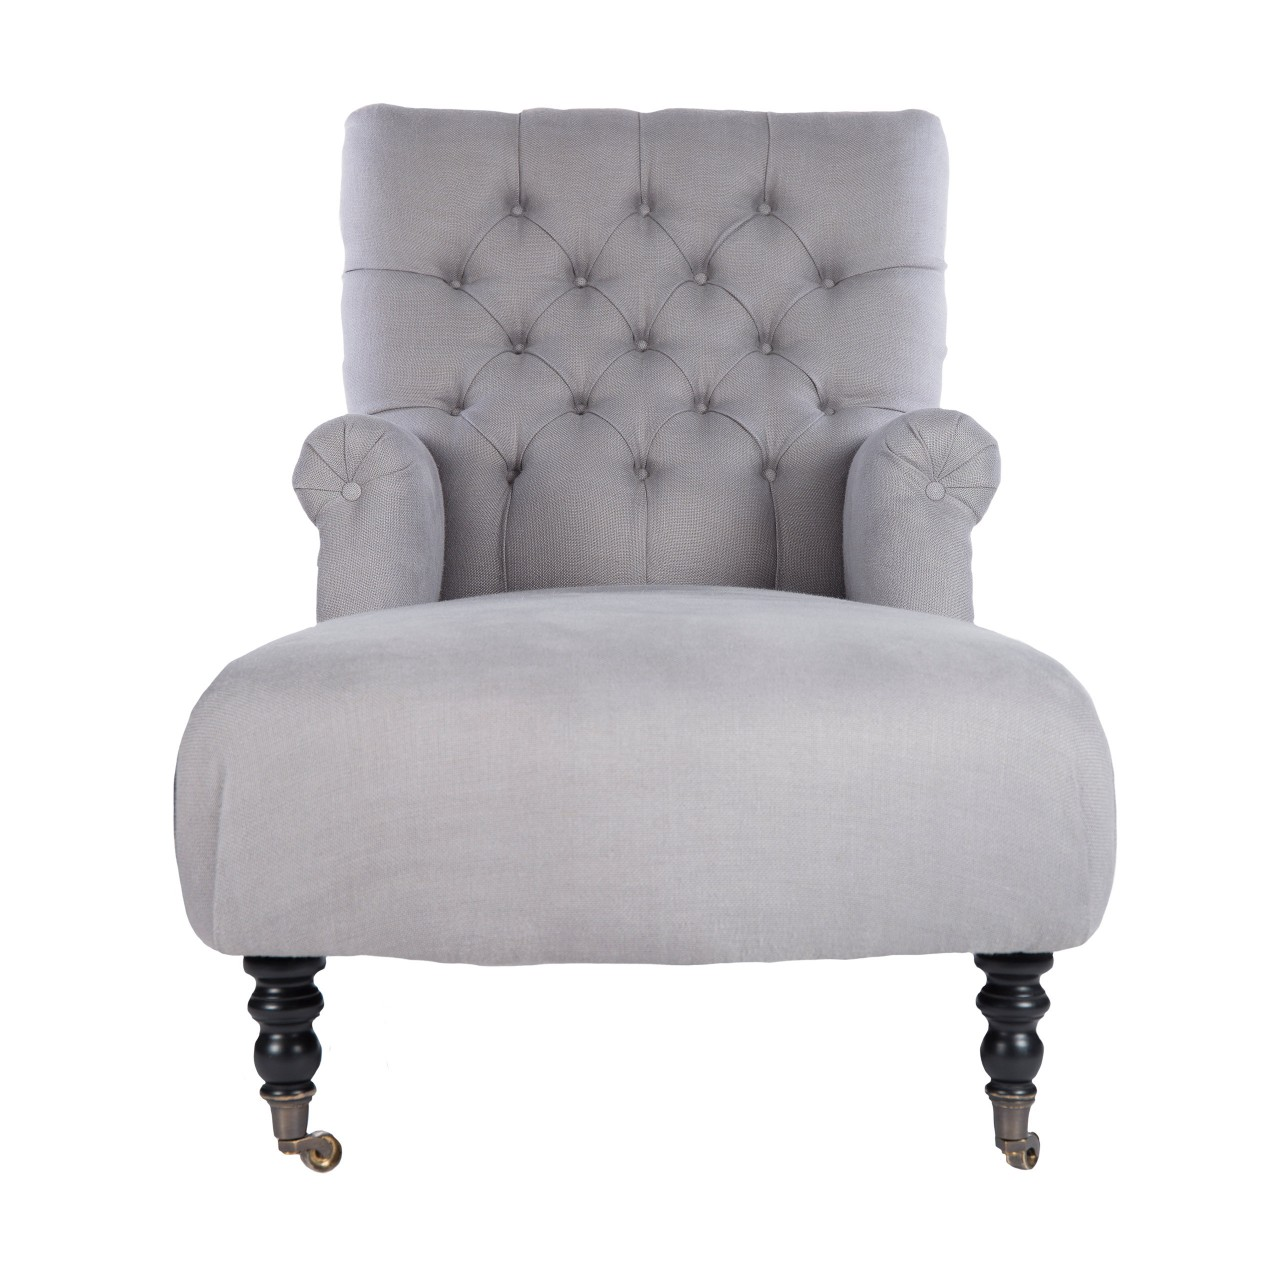 MADISON Chaise - FROST GREY Linen